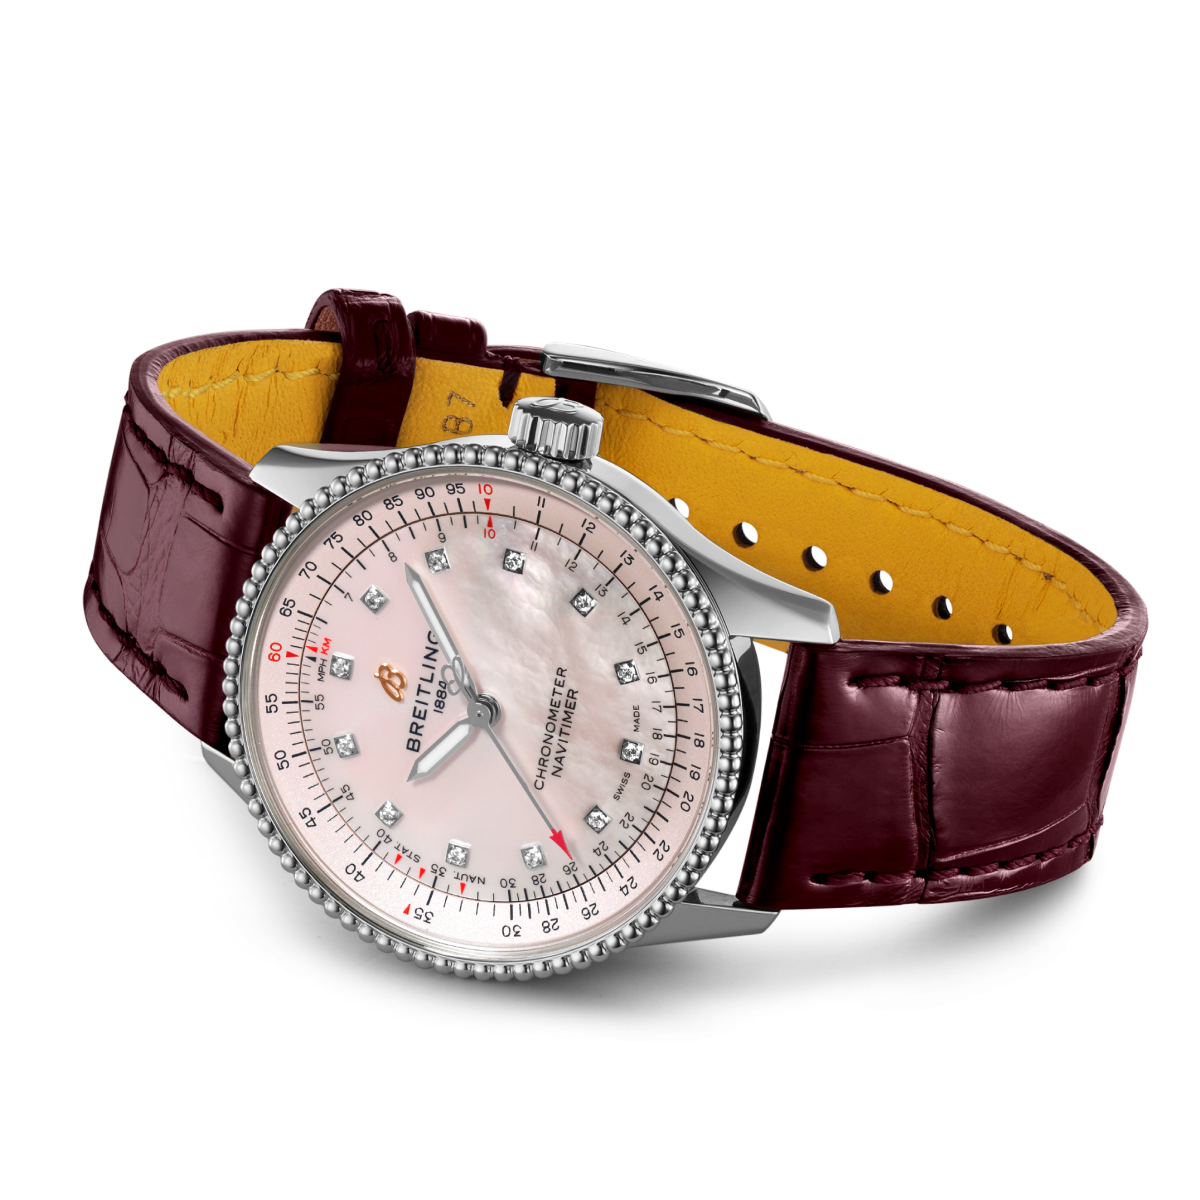 Recommending CA Two Female Replica Watches With Mother-Of-Pearl Dials